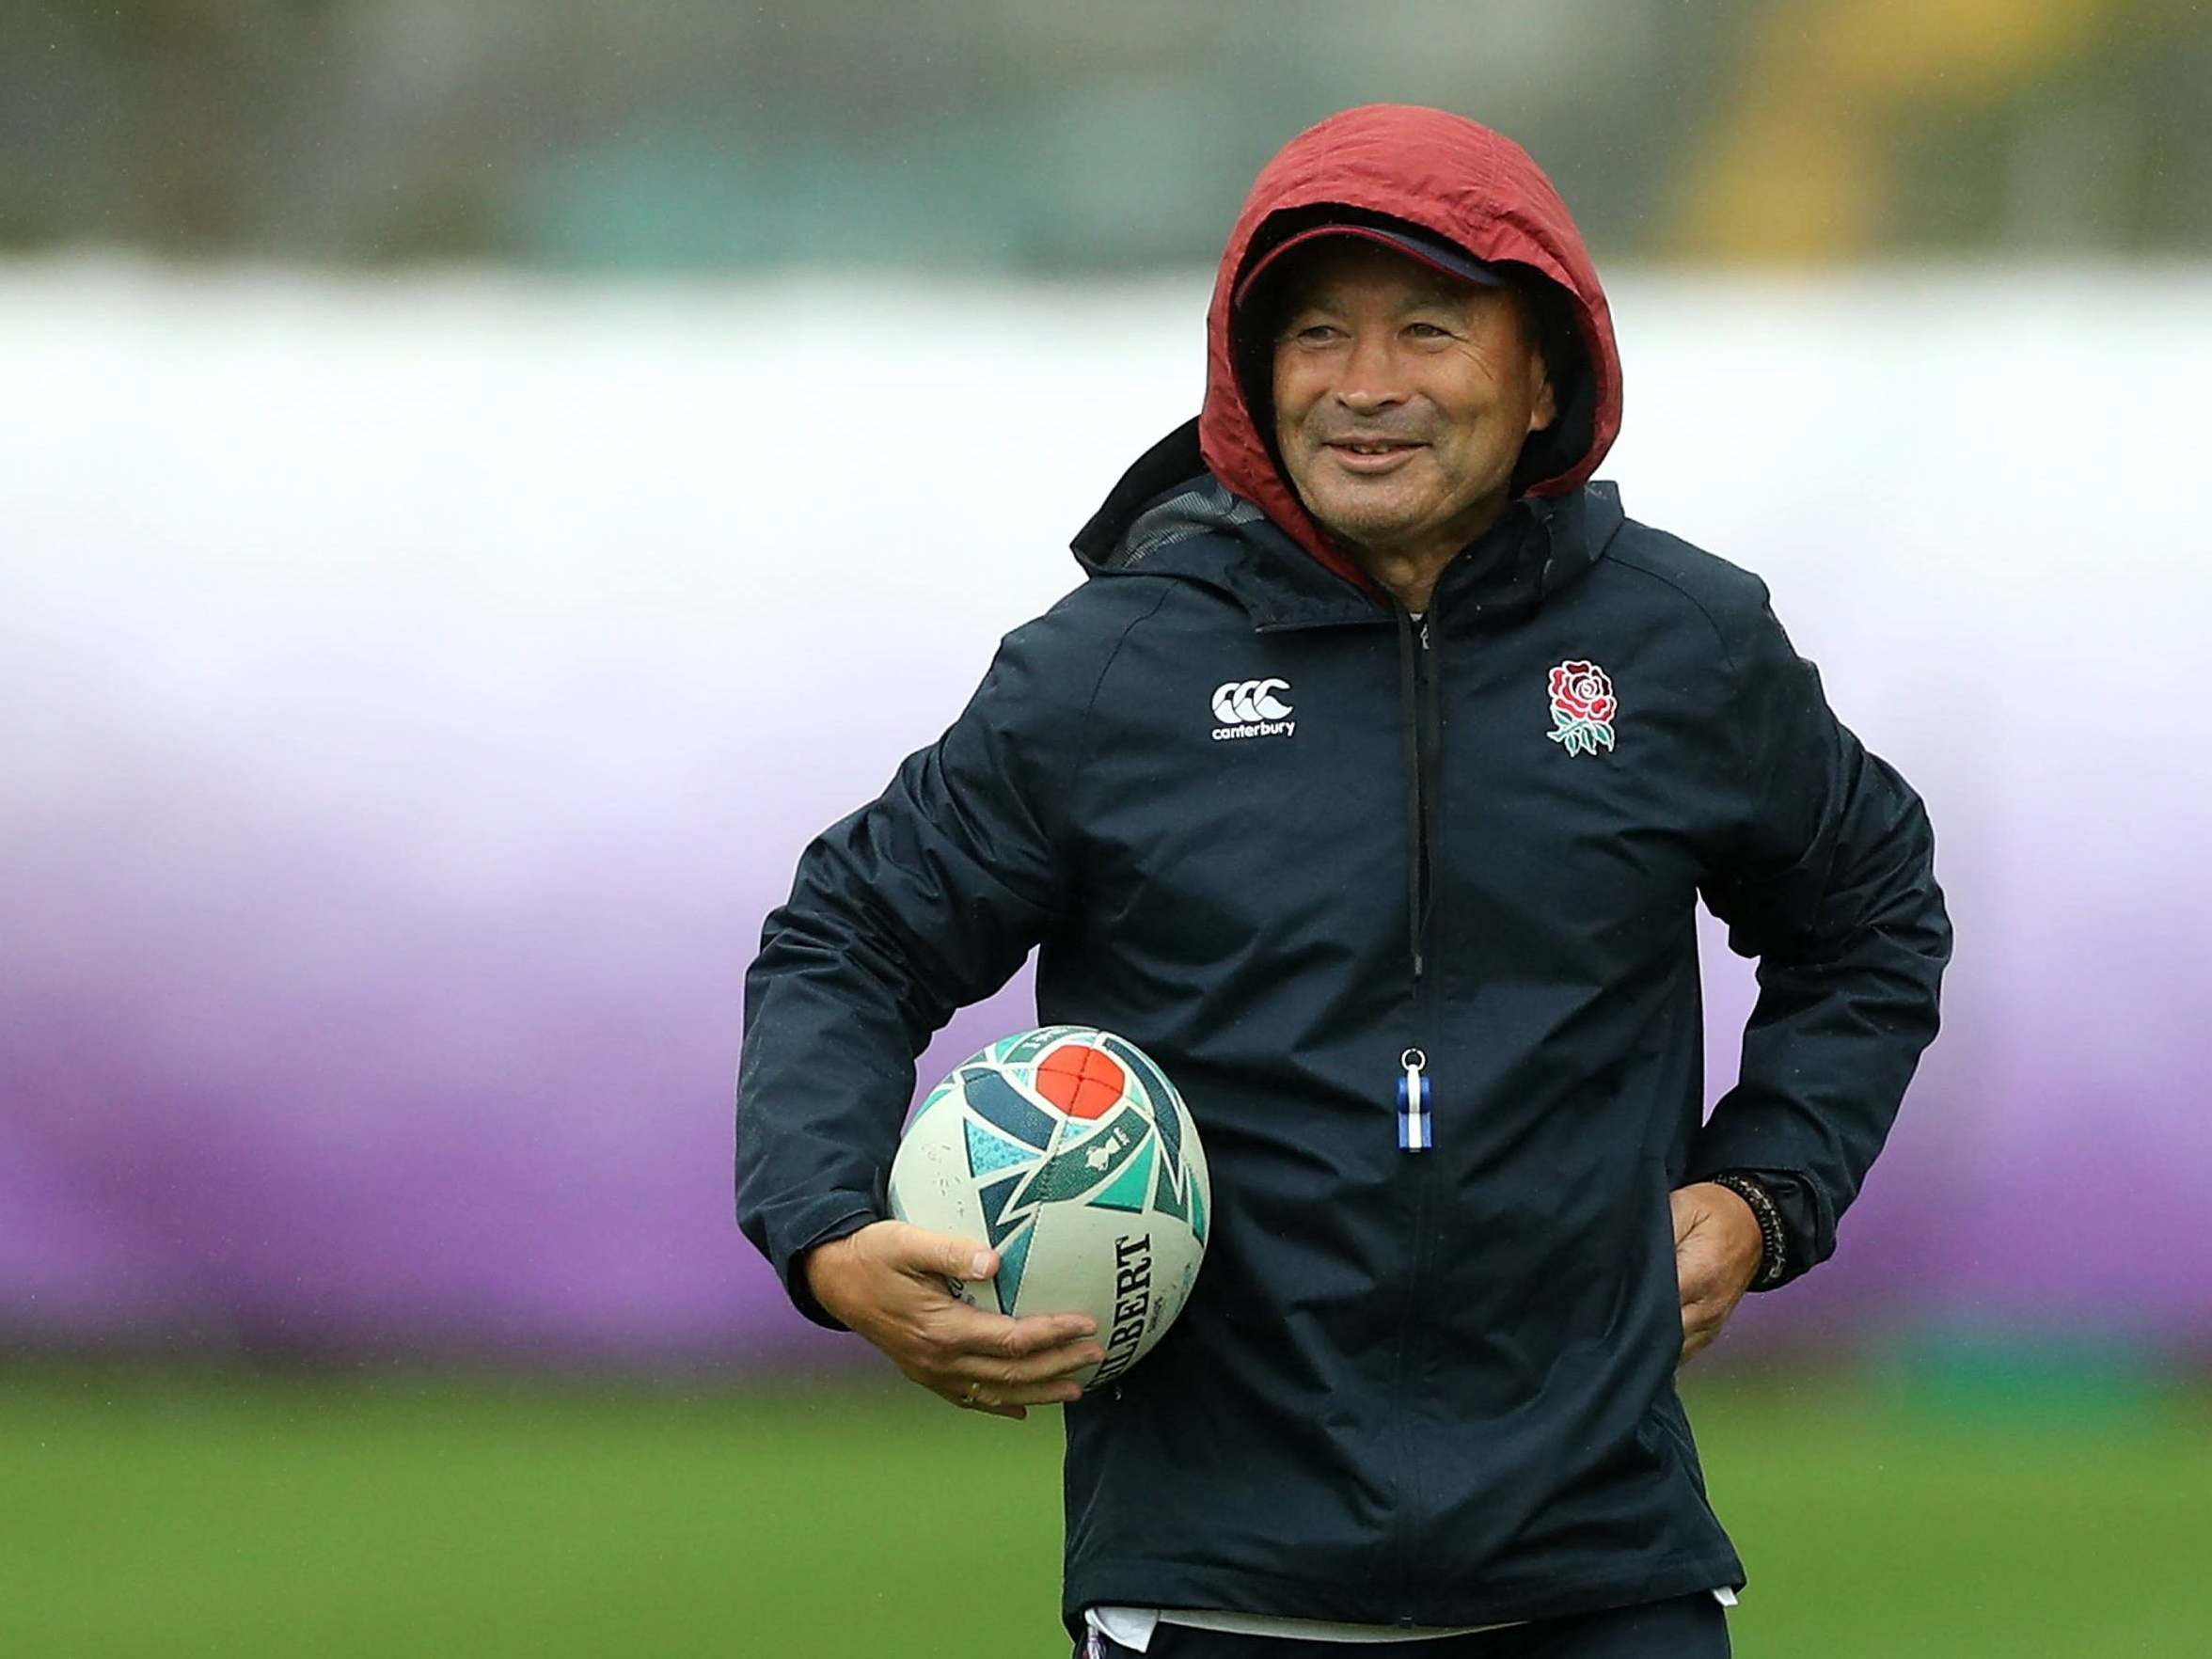 Rugby World Cup 2019: Eddie Jones claims England were spied on in training ahead of semi-final with All Blacks